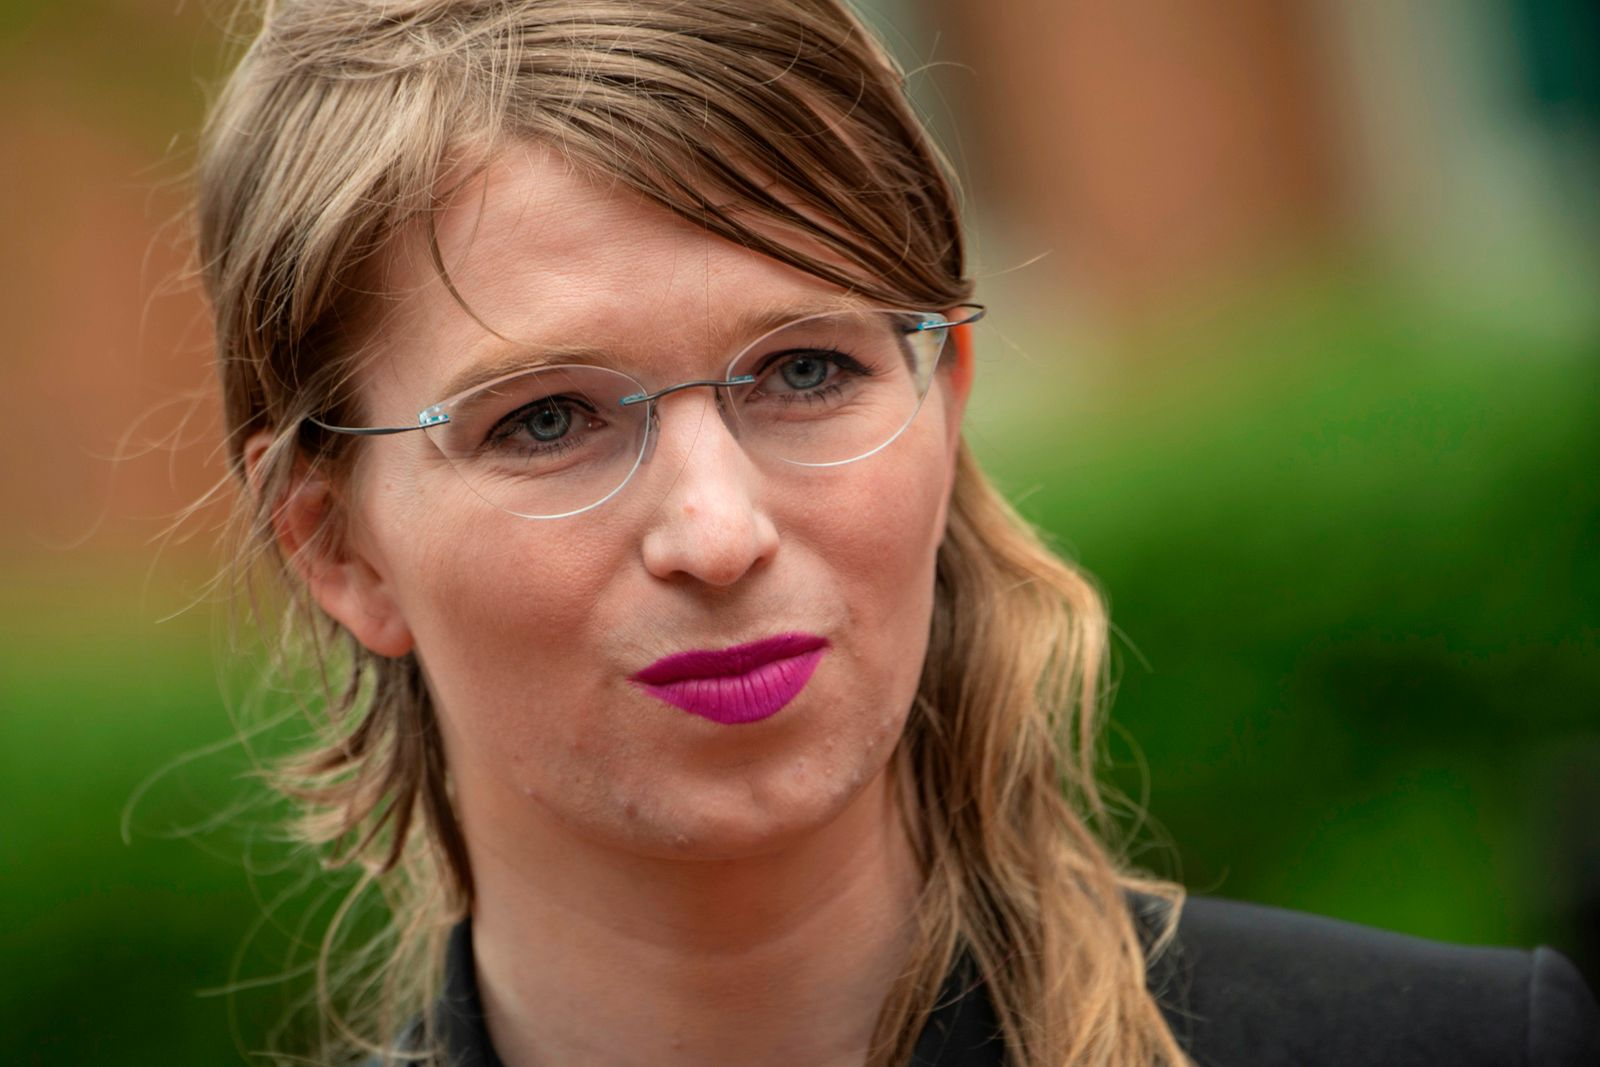 FILES-US-JUSTICE-MANNING